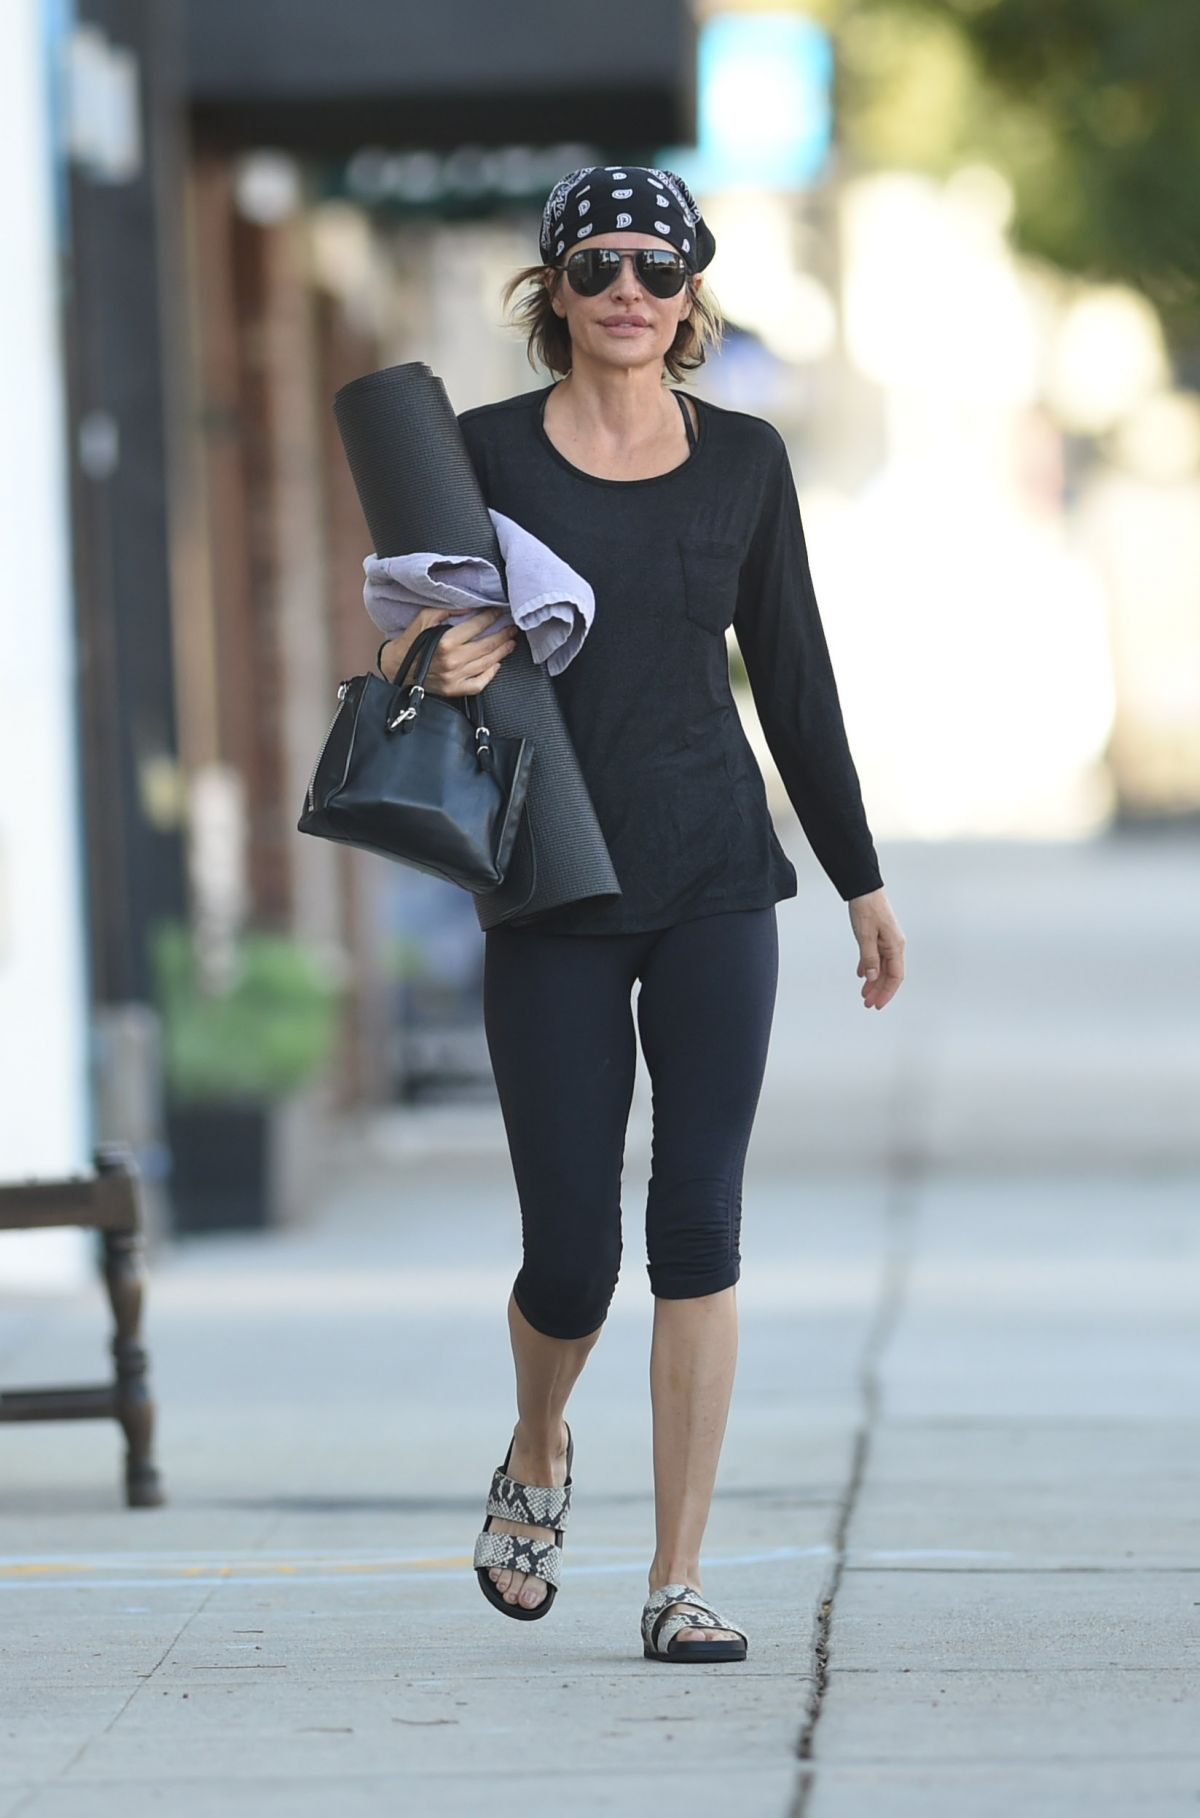 LISA RINNA at a Yoga Class in Los Angeles 11/25/2016